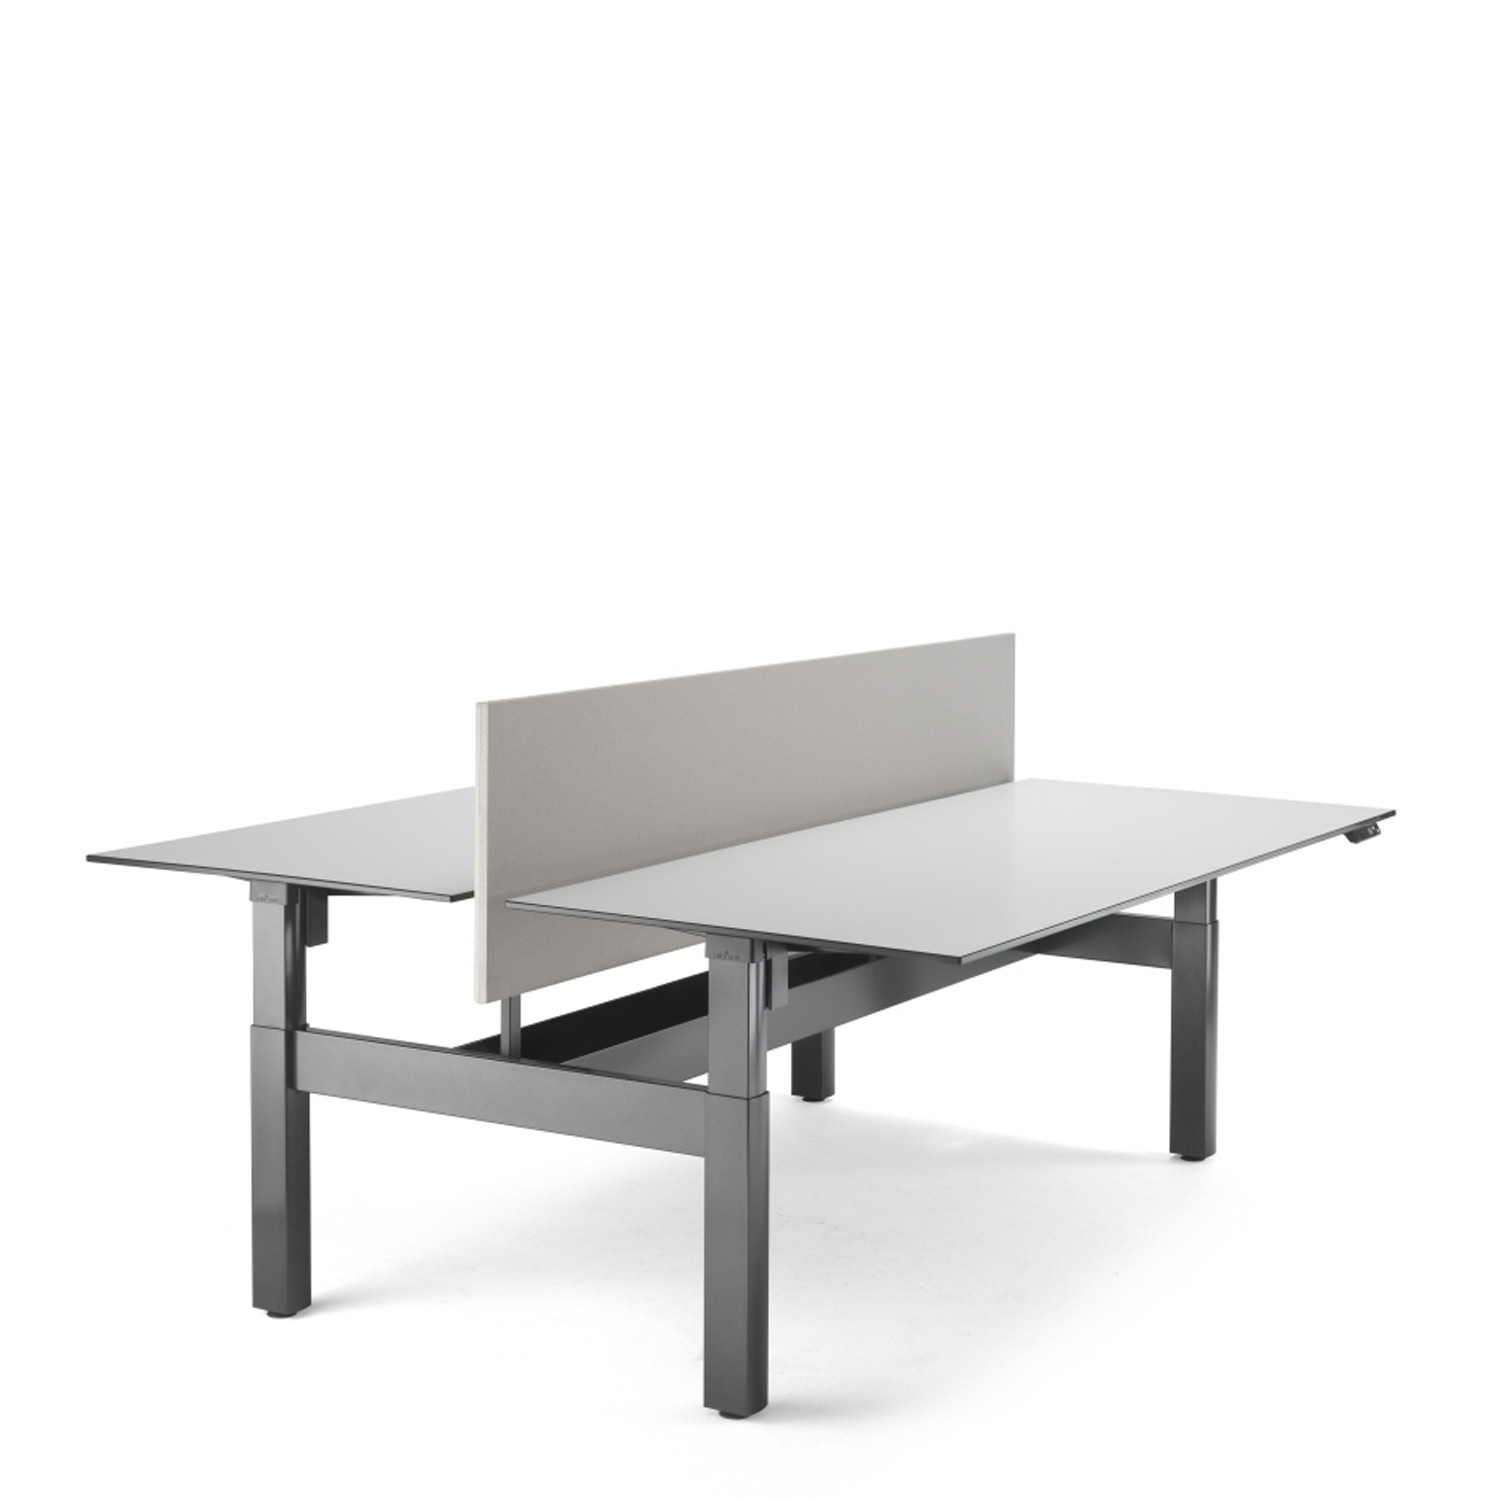 Ahrend Four Two Duo Table Height Adjustable Bench